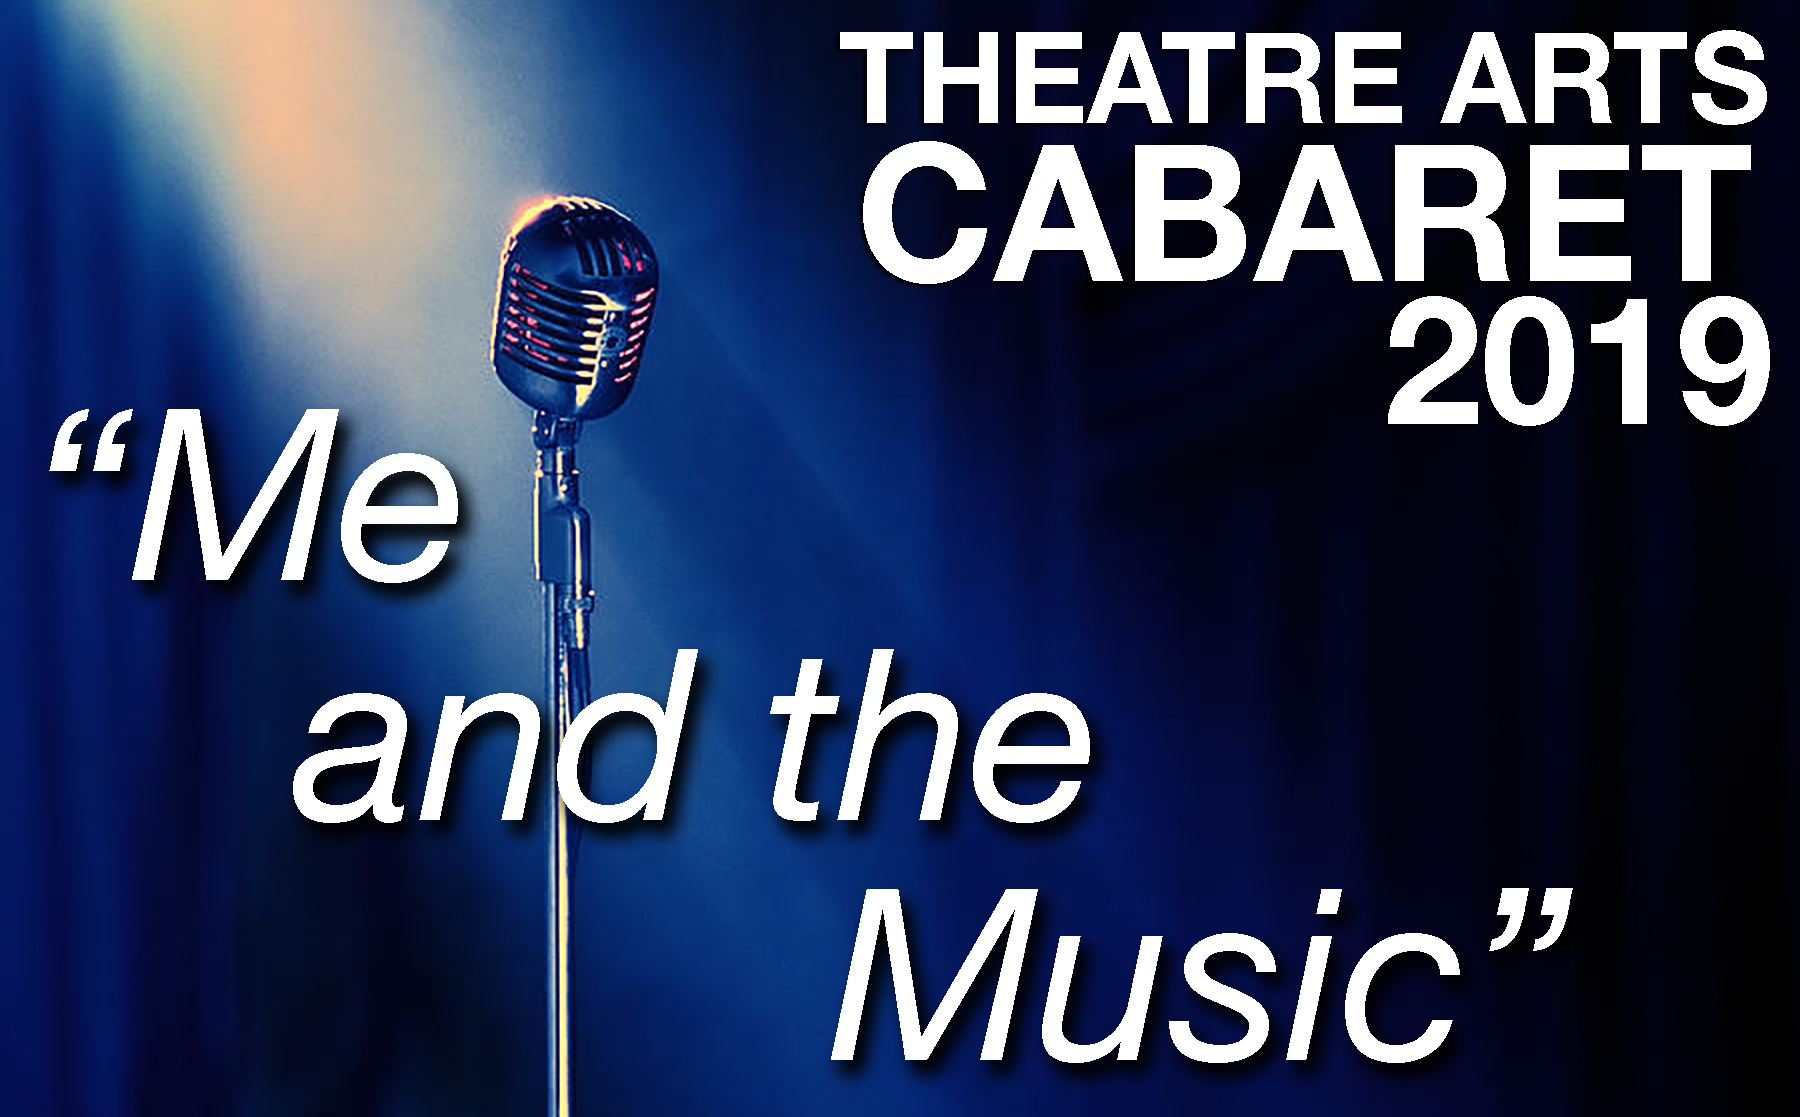 Theatre Arts Cabaret Poster 2019 _Me and the Music_WEB.jpg